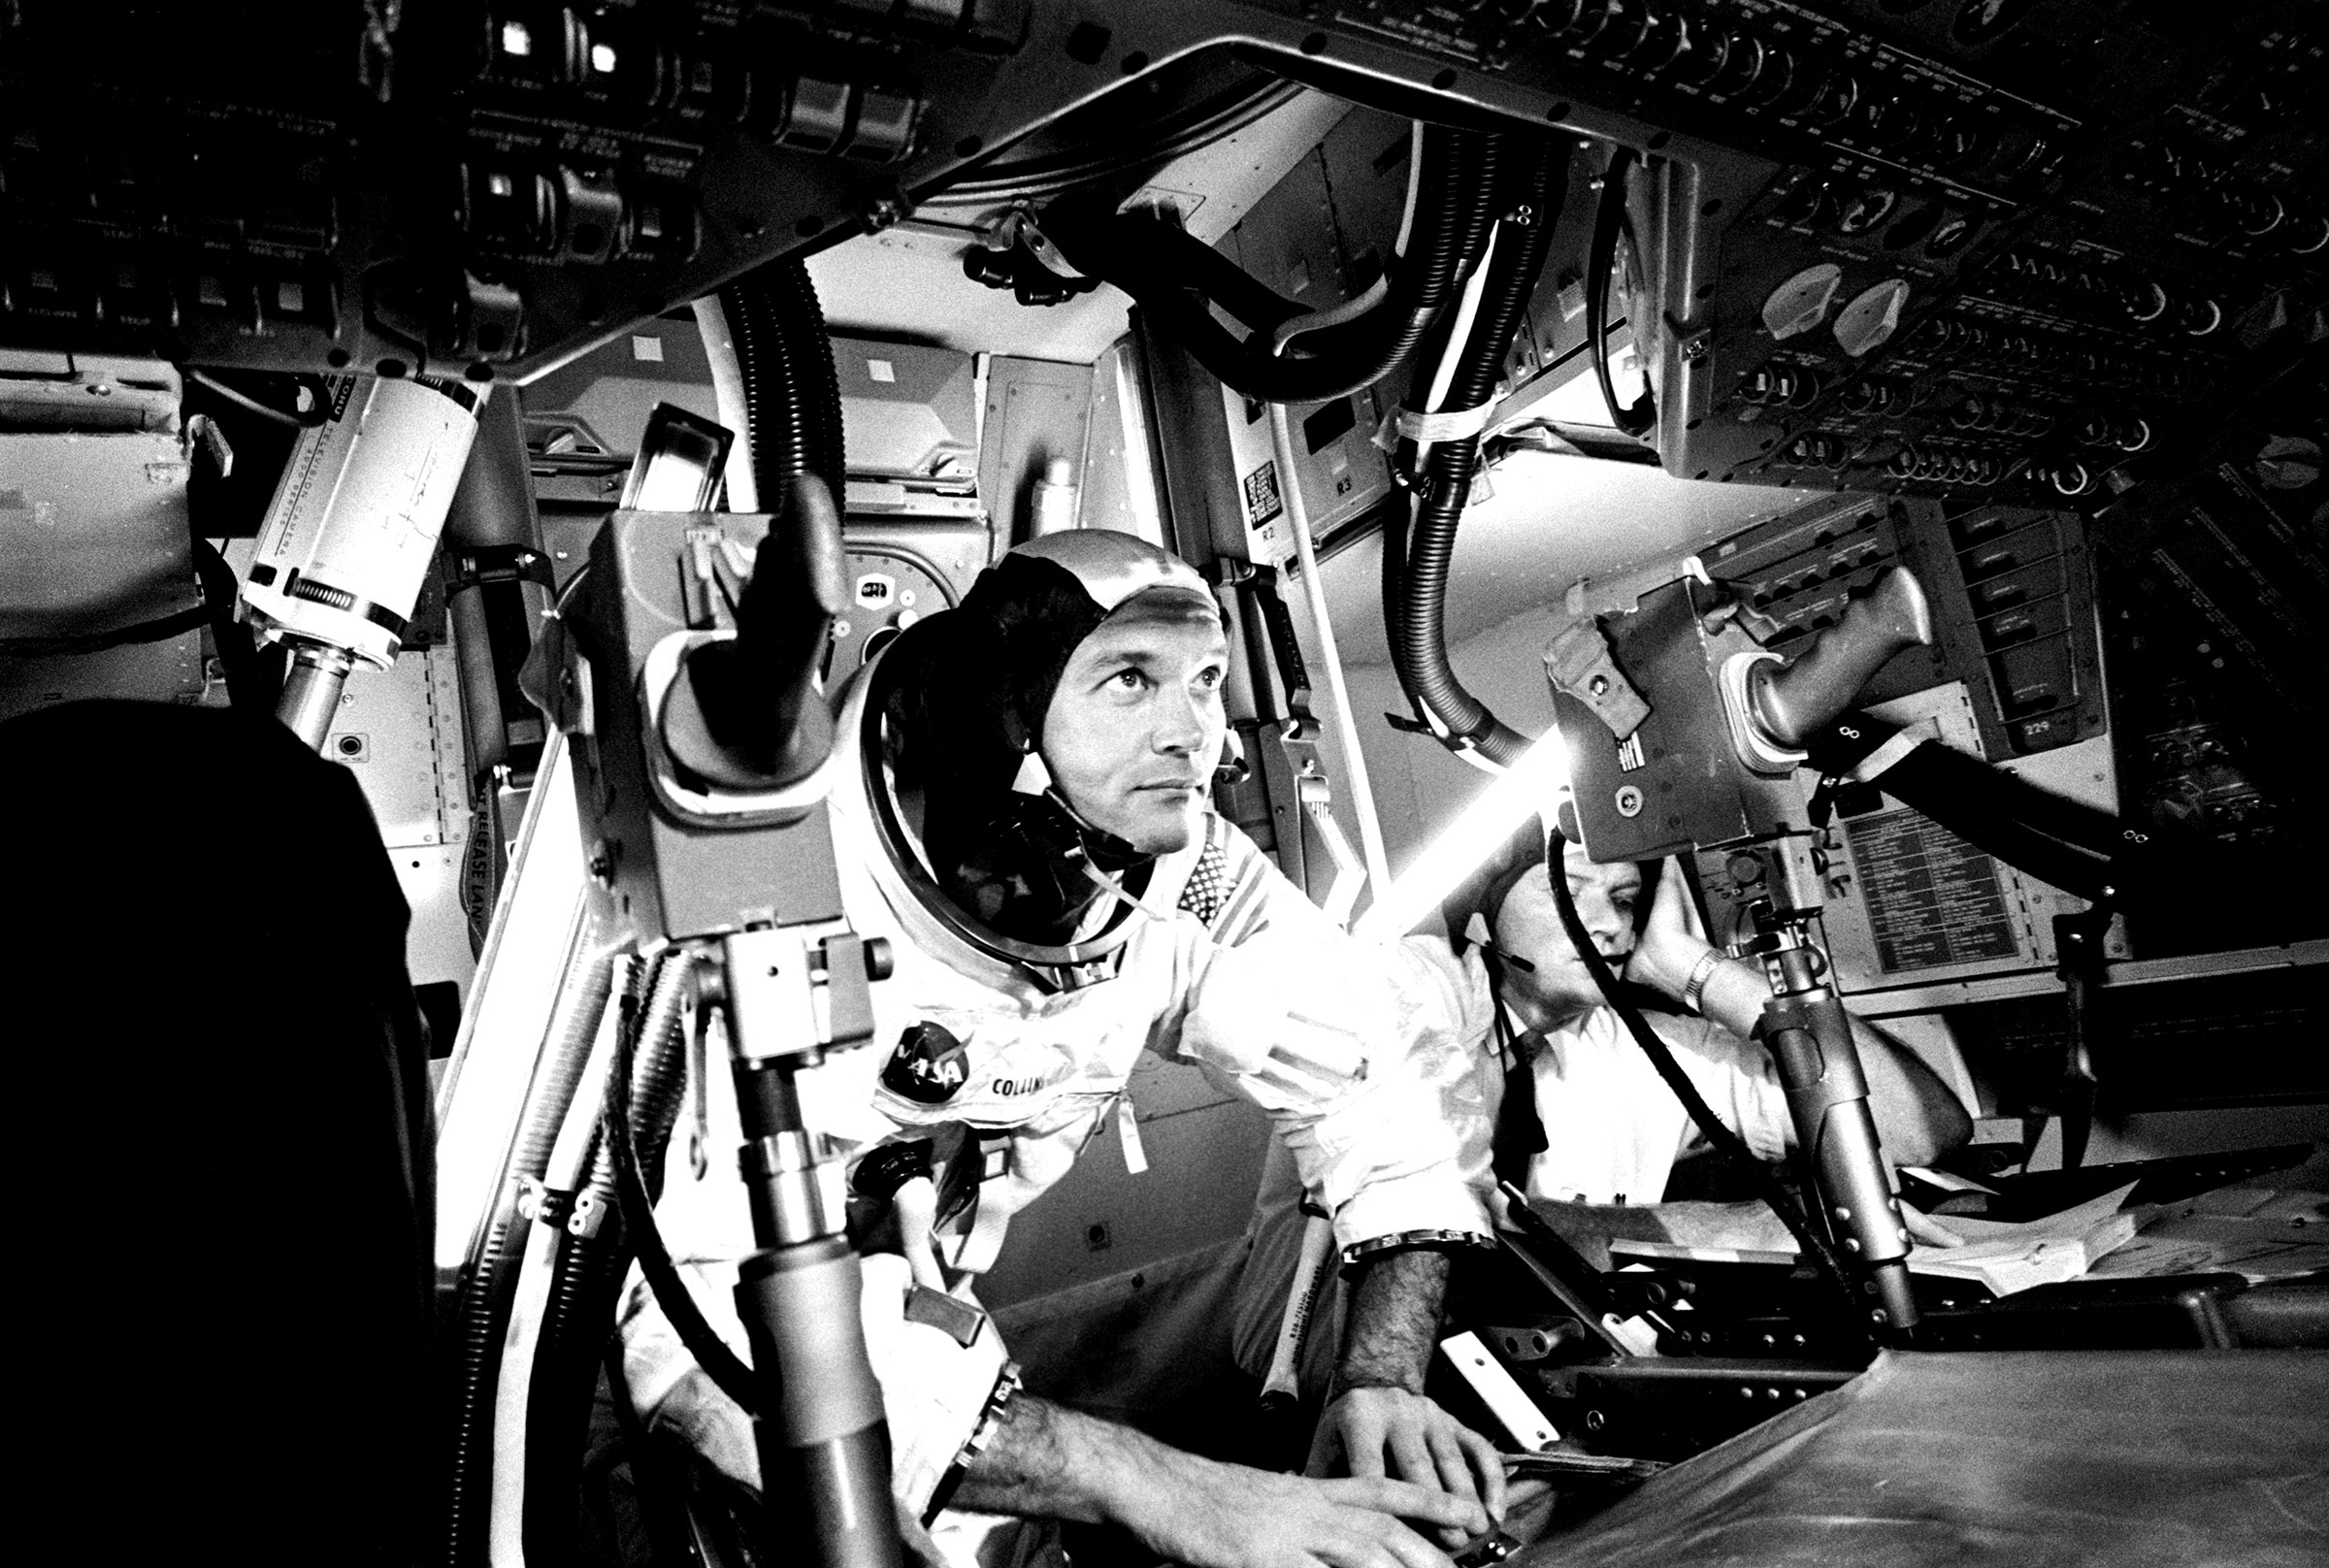 Michael Collins at the Apollo 11 Command Module, practicing docking hatch removal from CM simulator at NASA Johnson Space Center, in Houston on June 28, 1969.